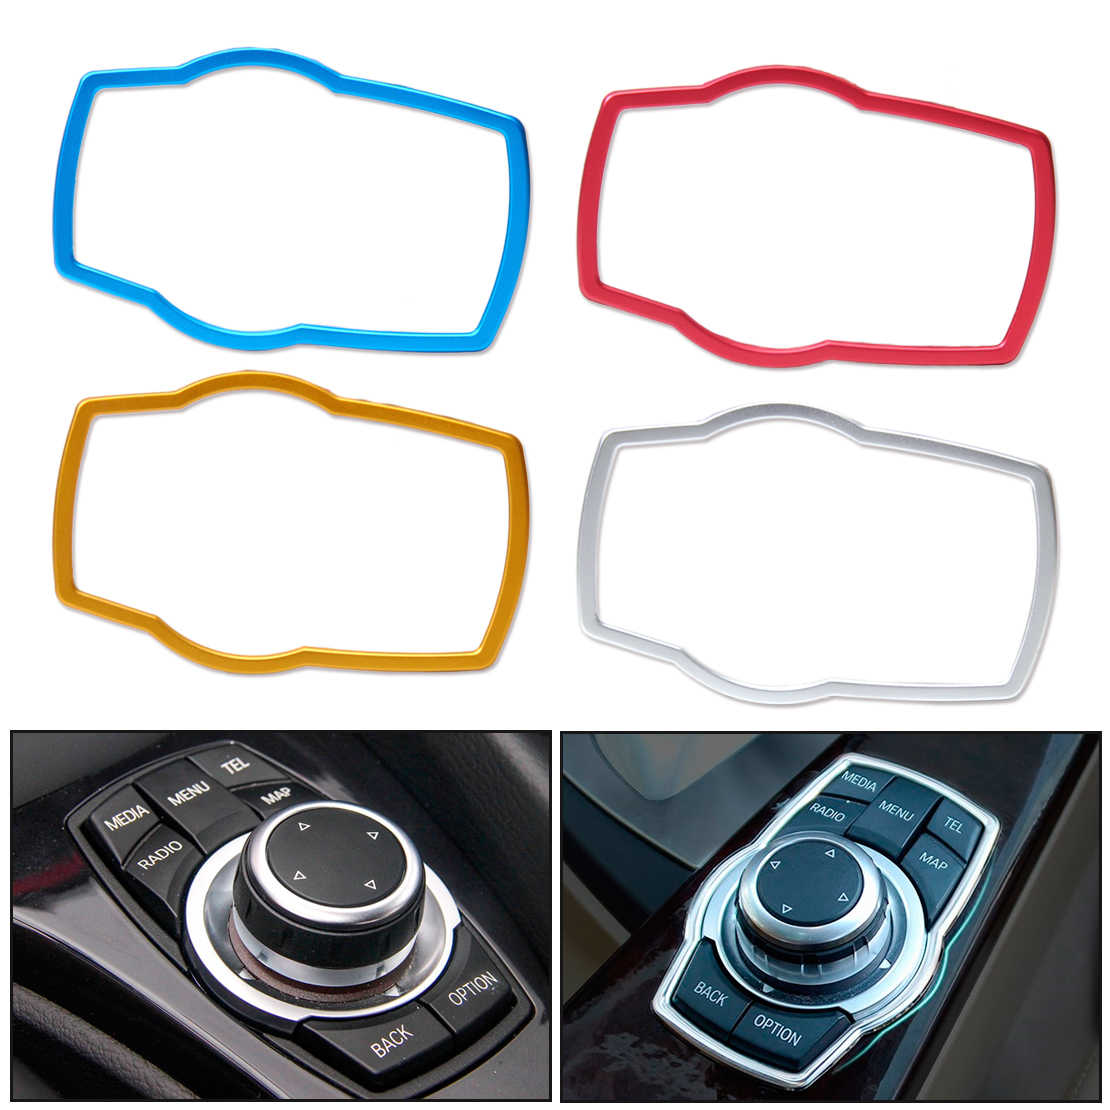 beler New Aluminum Alloy Car Interior Multimedia Button Cover Trim For BMW 1 / 3 / 4 / 5 / 7 Series X1 X3 X4 X5 X6 2013 2014